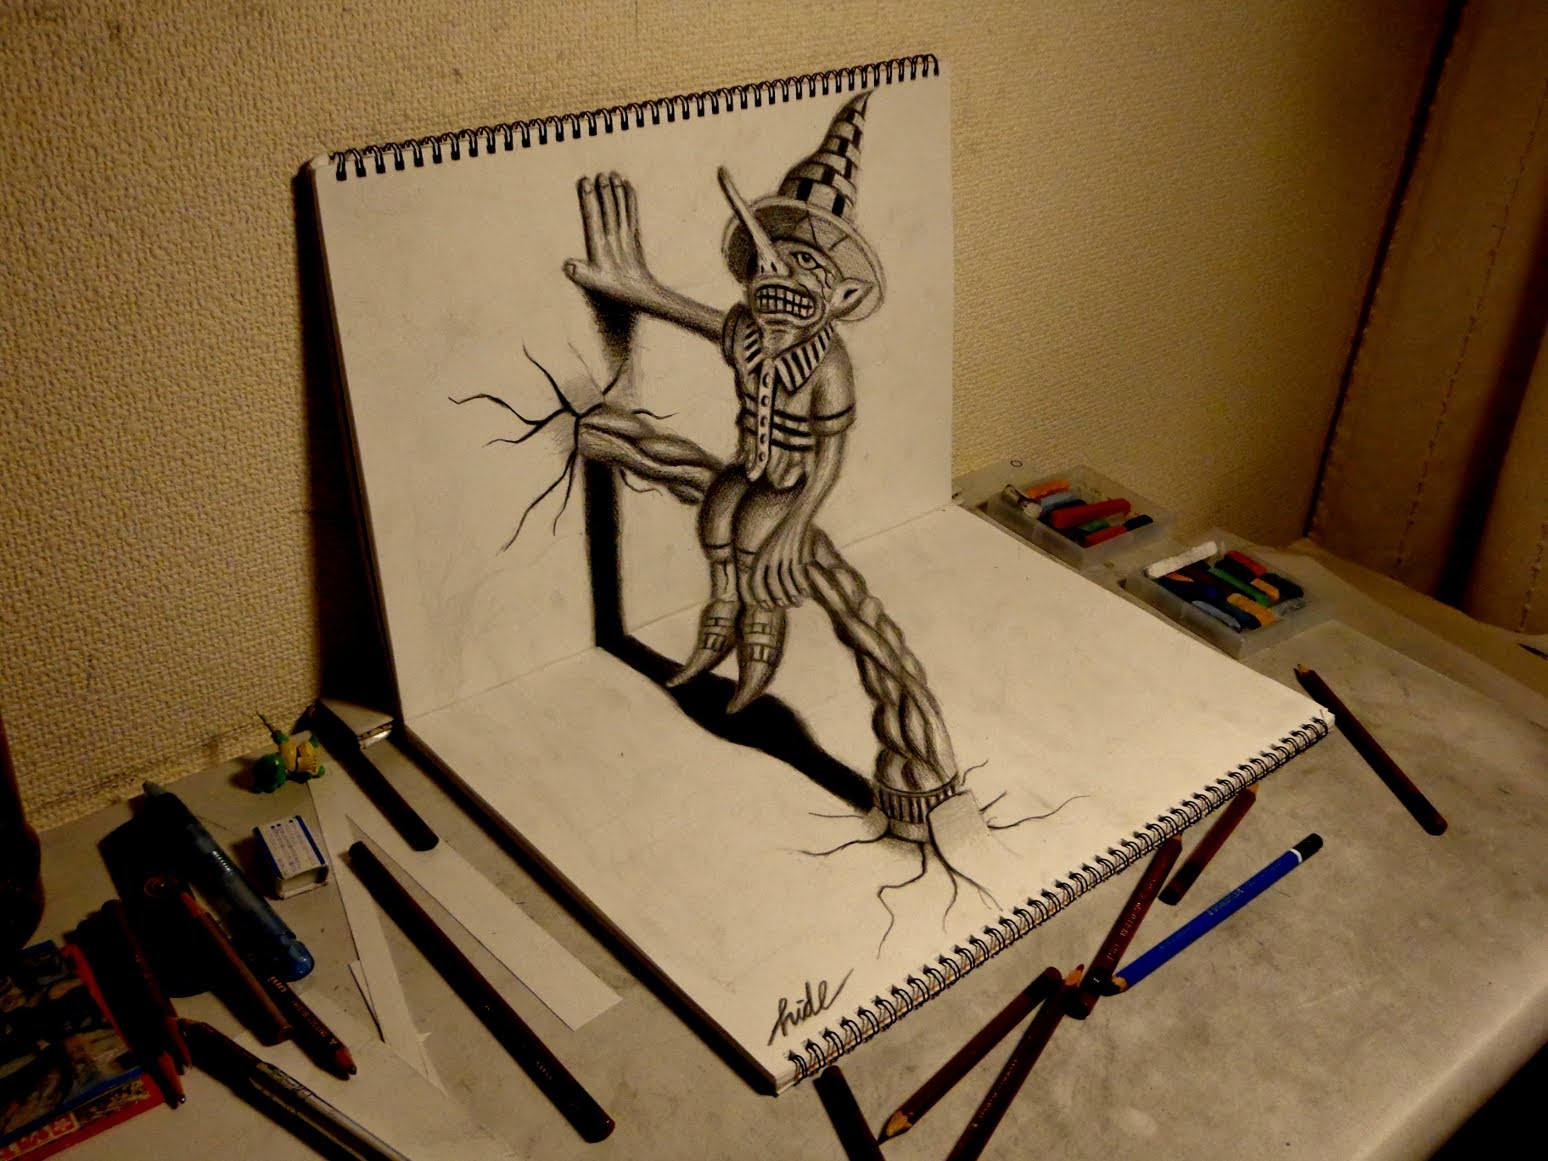 Drawn 3d art #6